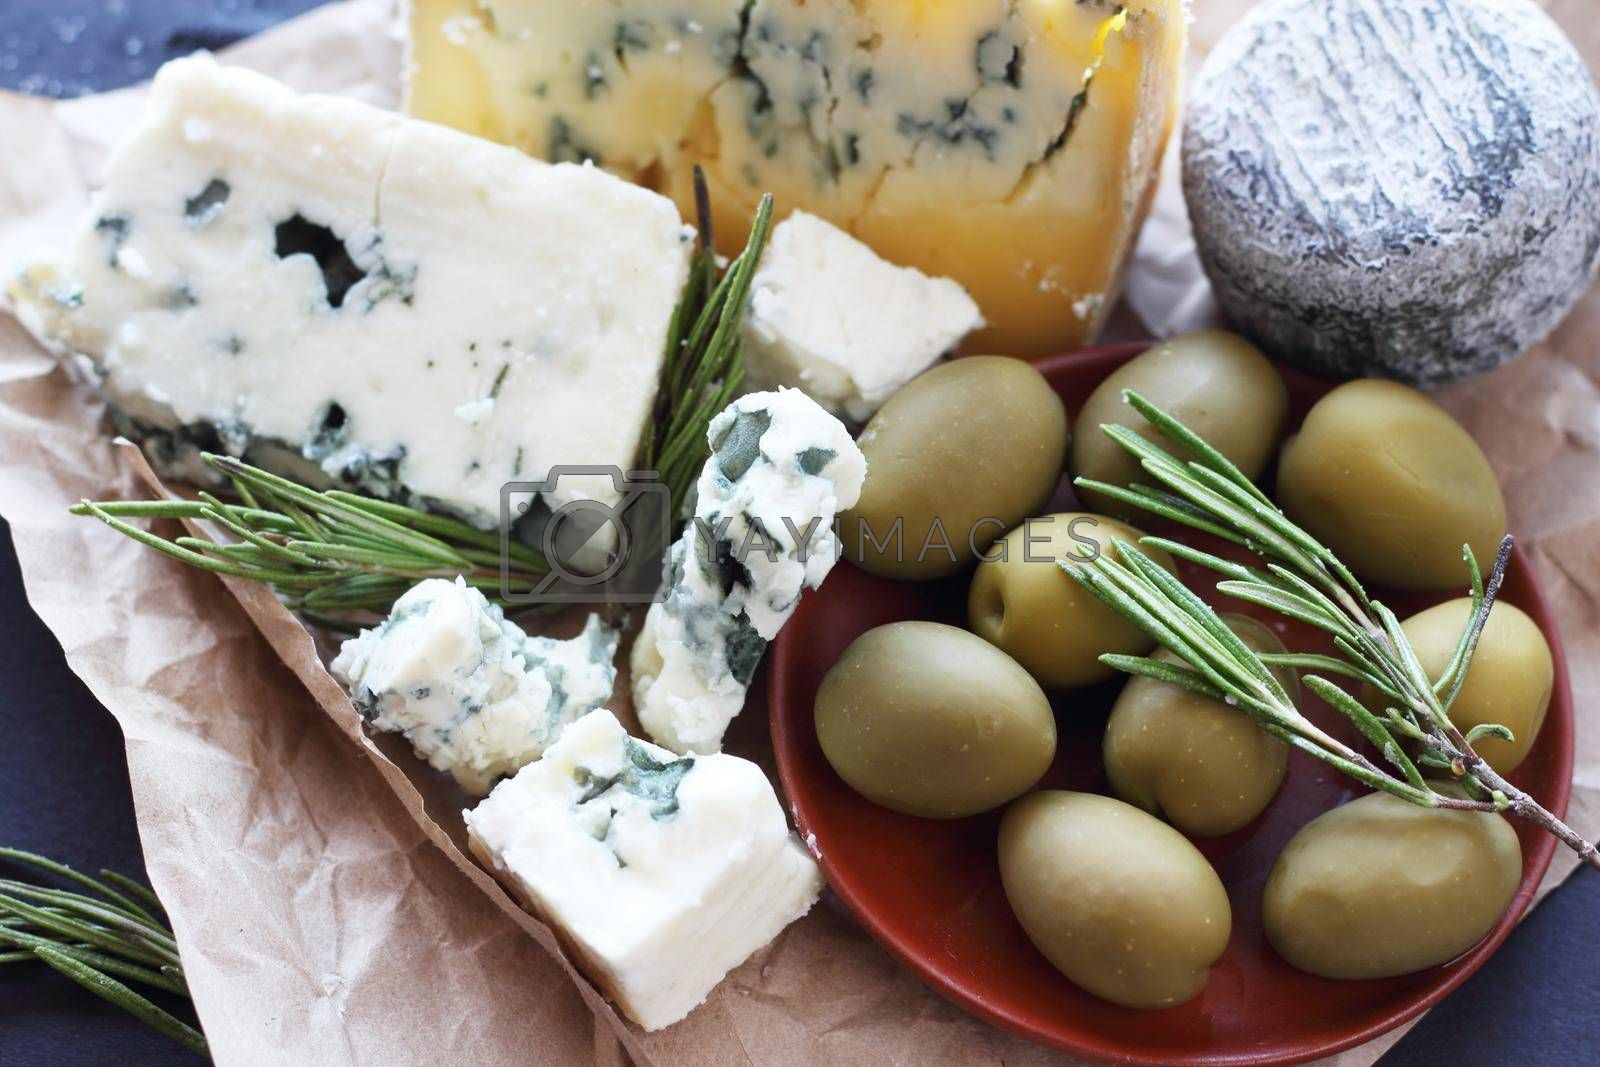 Roquefort cheese and olives gourmet stylish composition on dark background